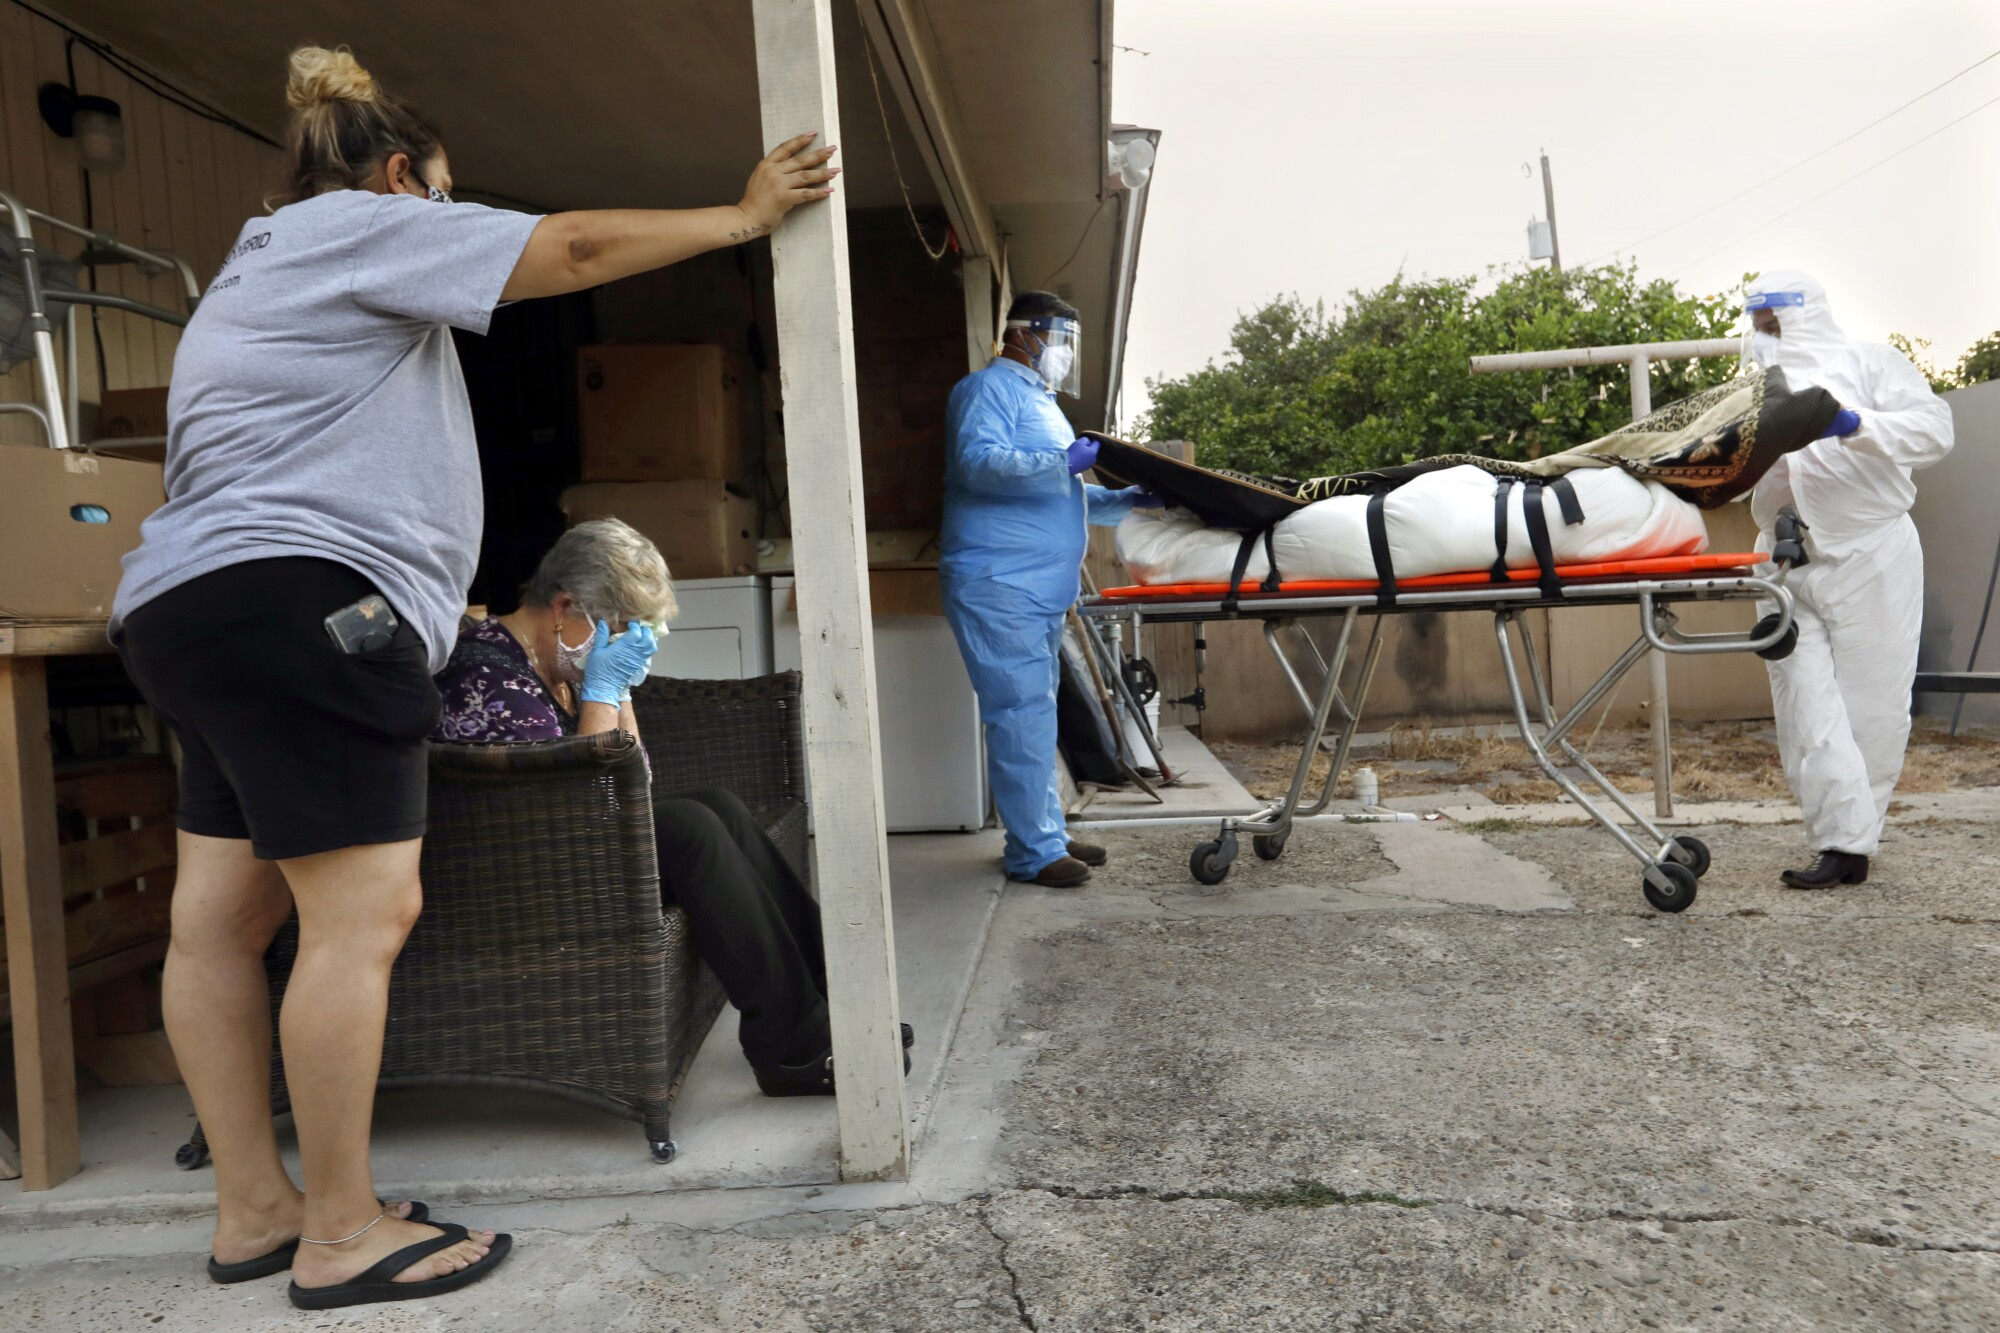 Maura Ramirez, standing, watches as Juan Lopez and Elizandro Flores remove the body of her mother from her home.